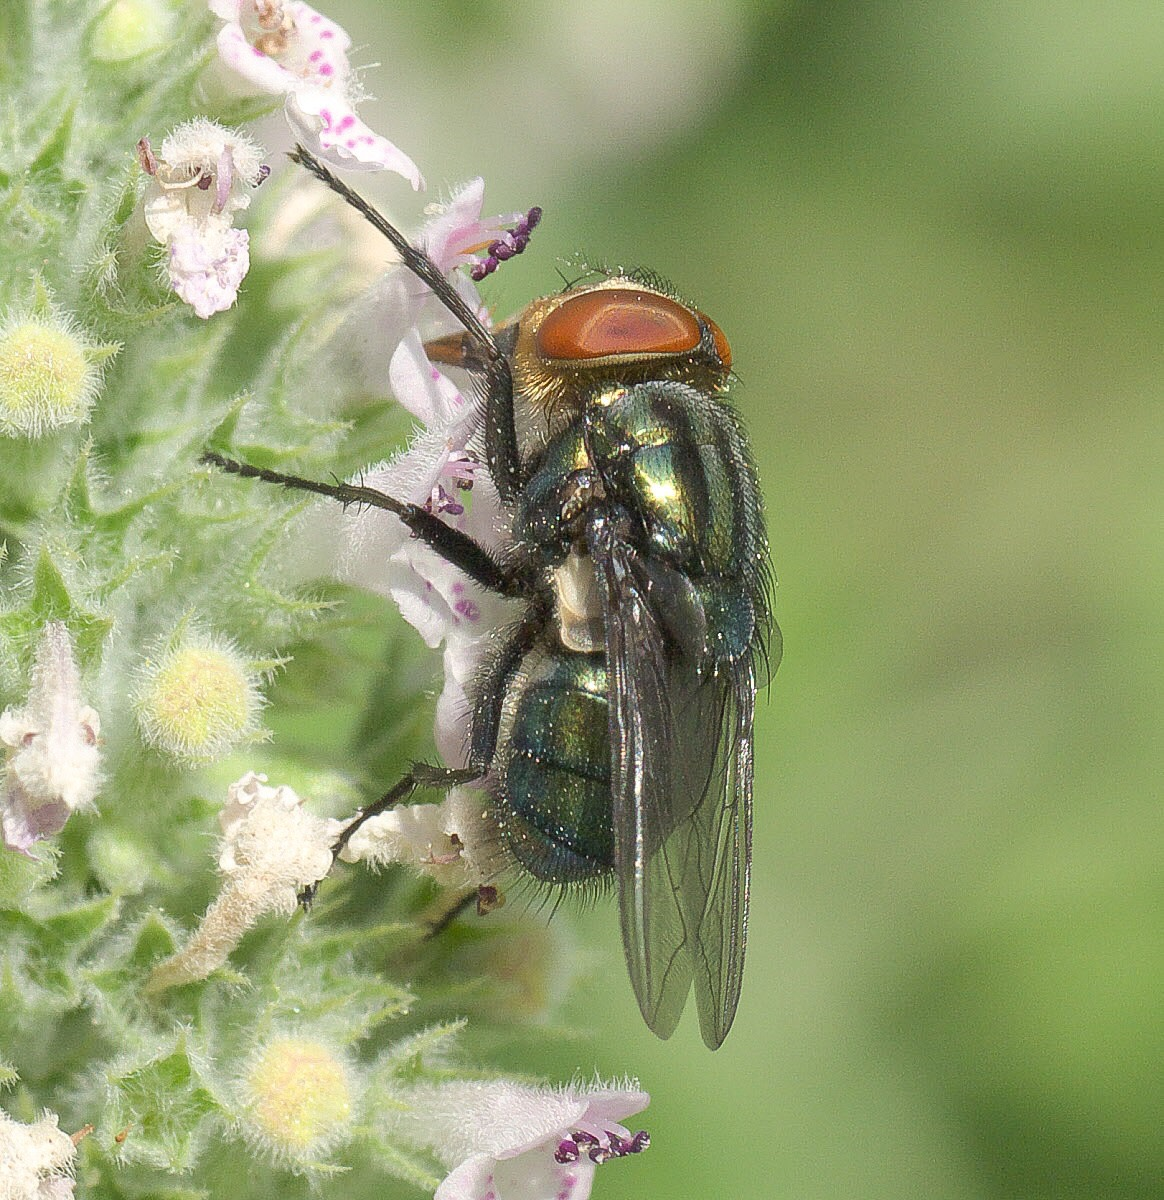 A secondary screwworm fly on a catnip plant